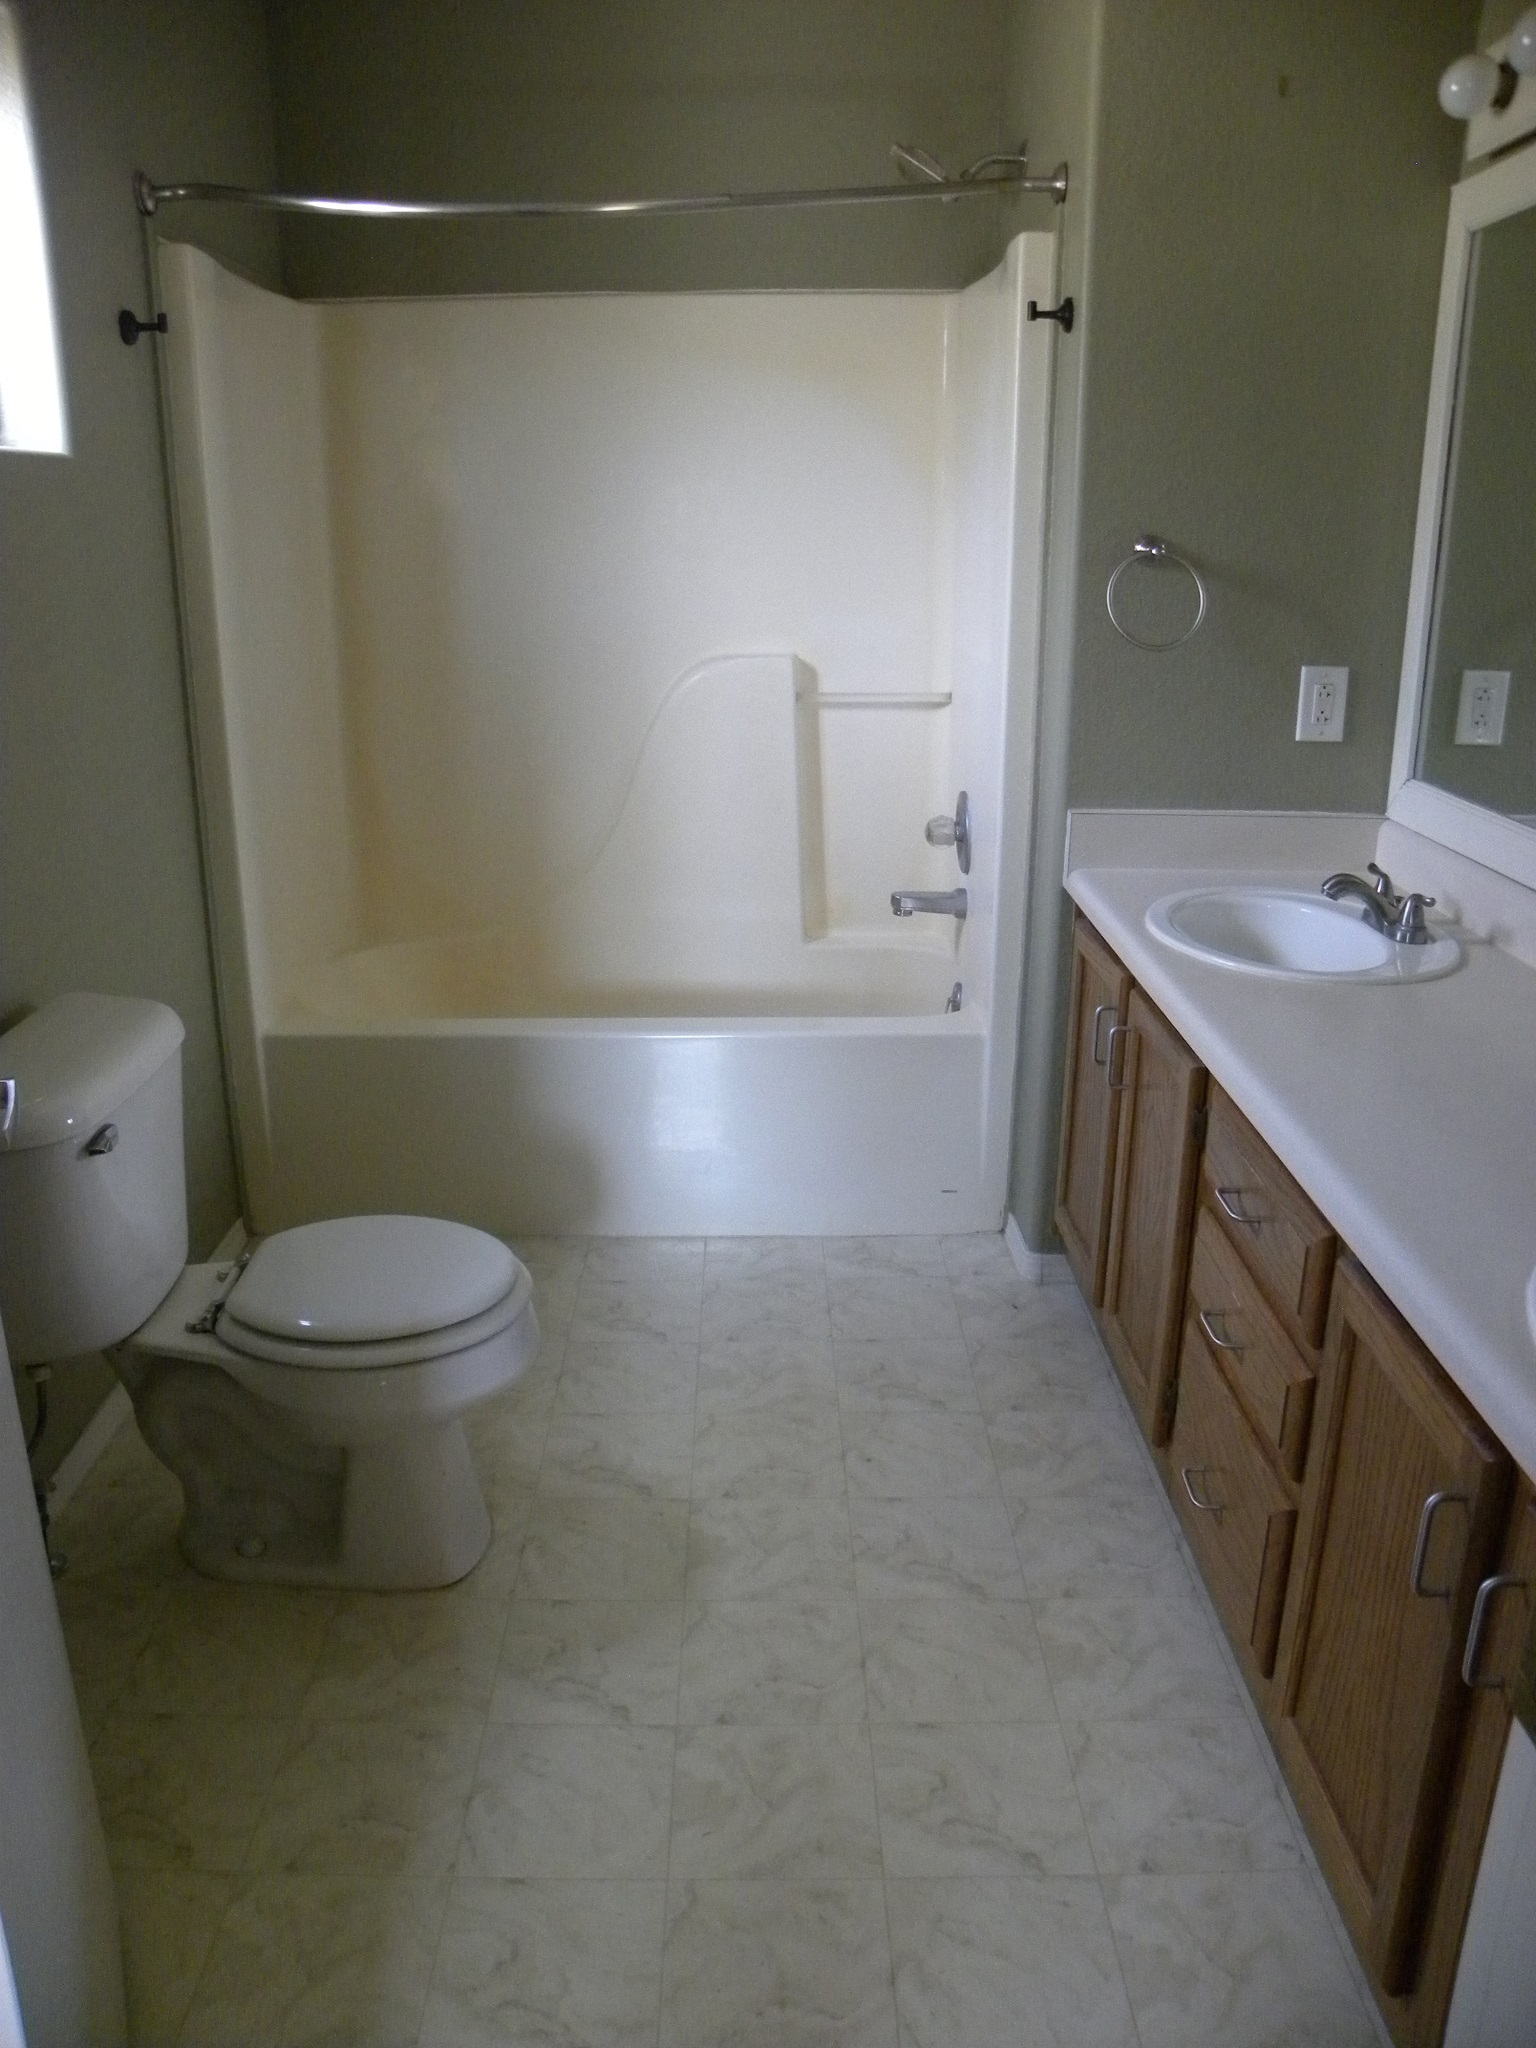 Before photo of a residential bathroom with white countertops and wooden cabinets, a white toilet, a white shower, and white marbled tiles.